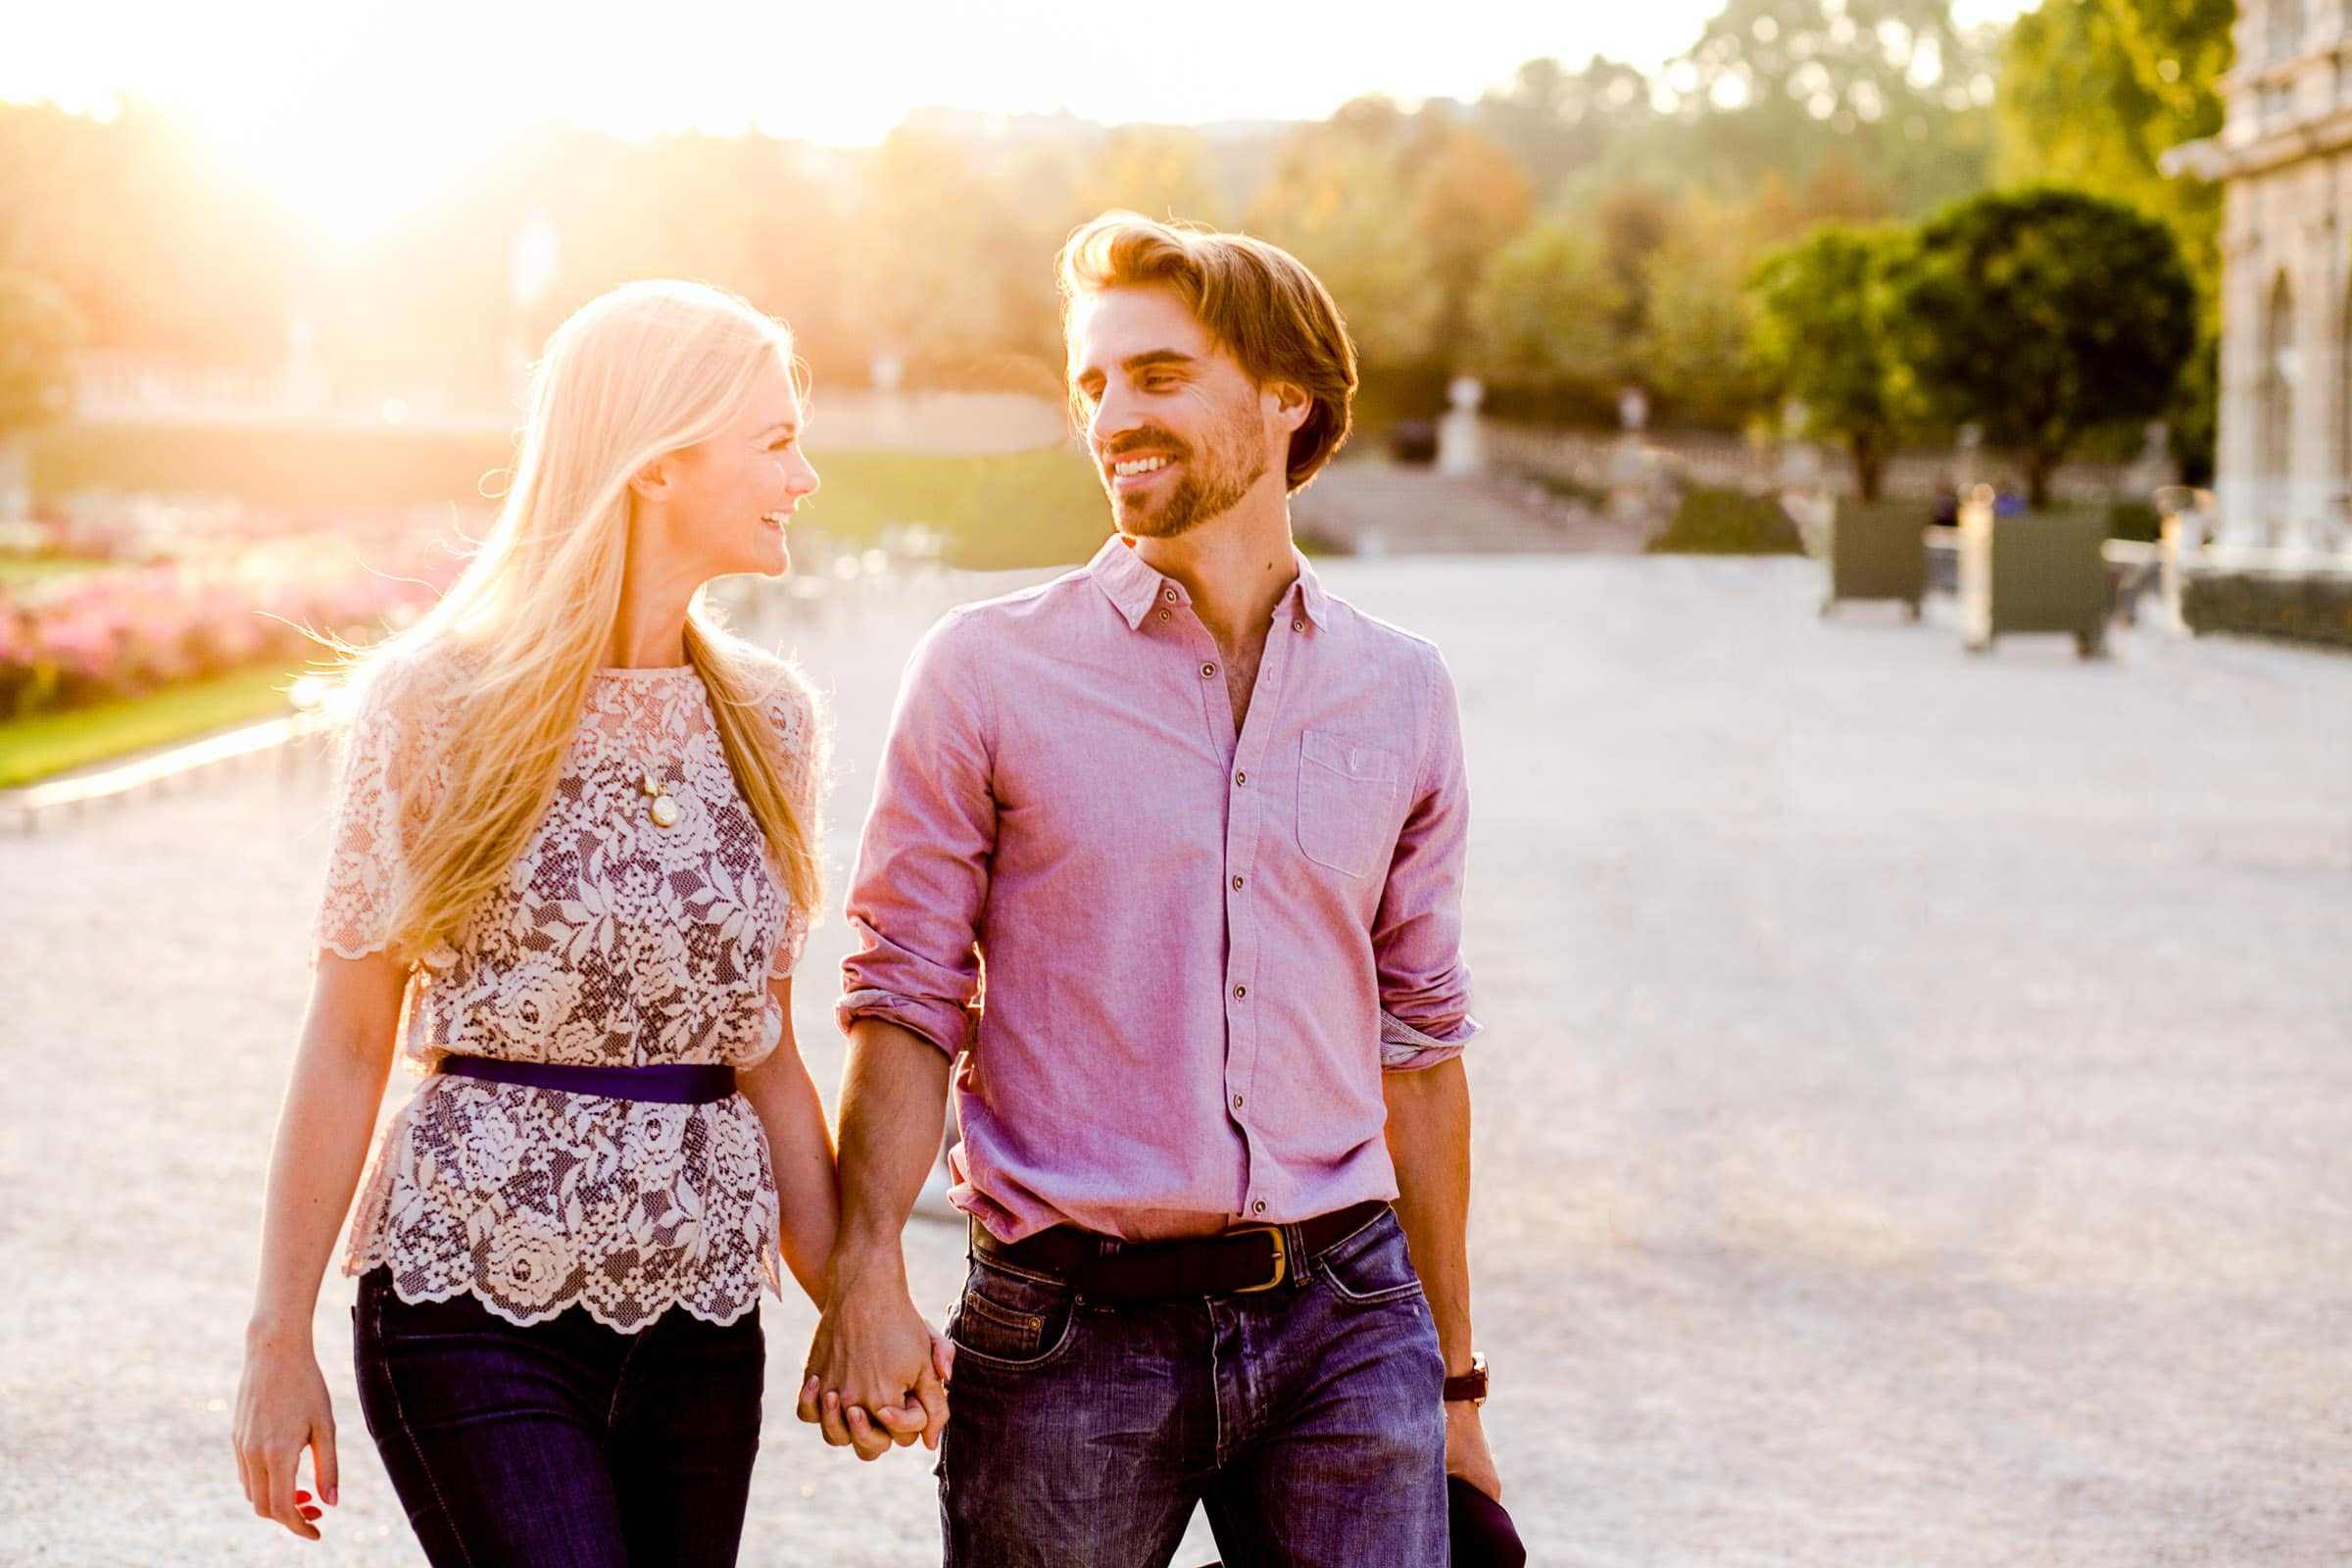 A peaceful moment of connection during Faye and David's Montmartre Paris Engagement date in the Luxembourg Gardens while walking and connecting